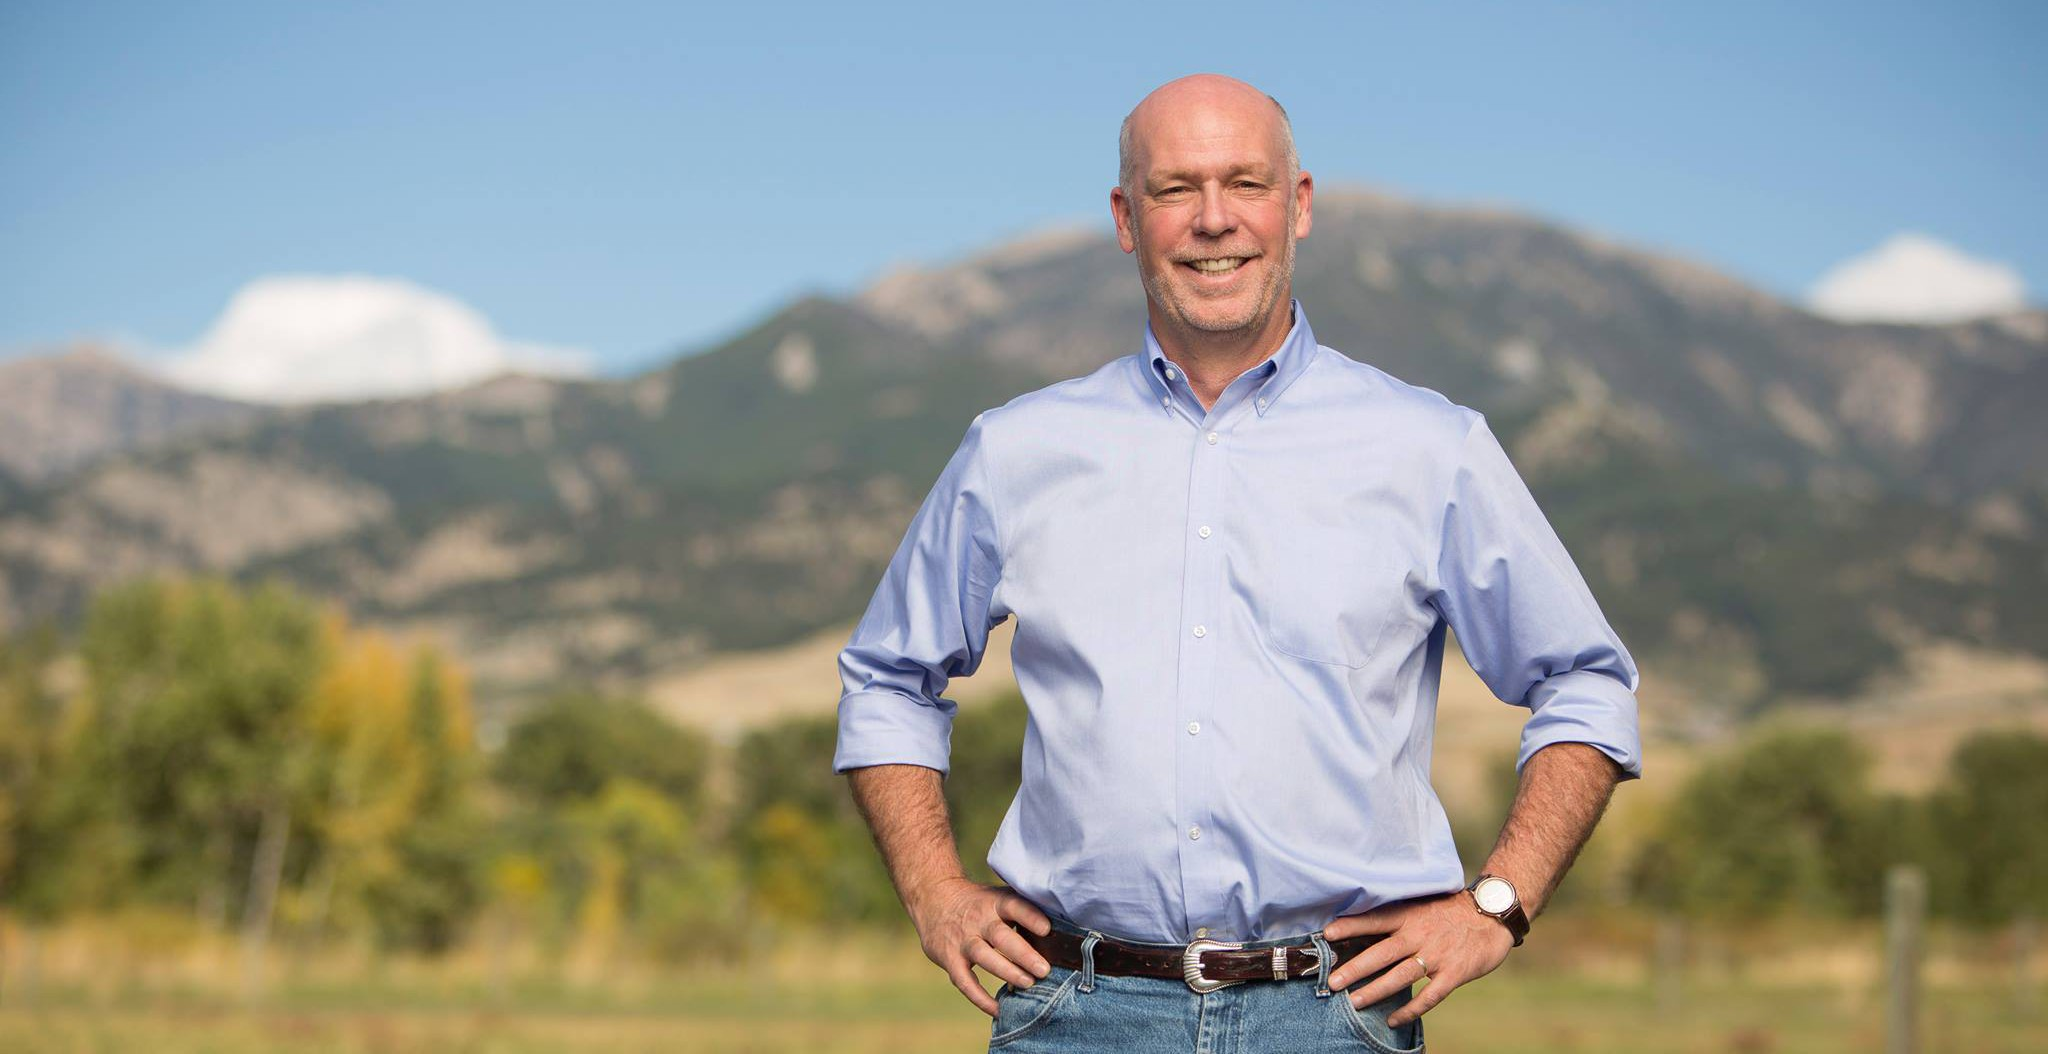 Greg Gianforte standing outside in a blue collared shirt and jeans with mountains in the background